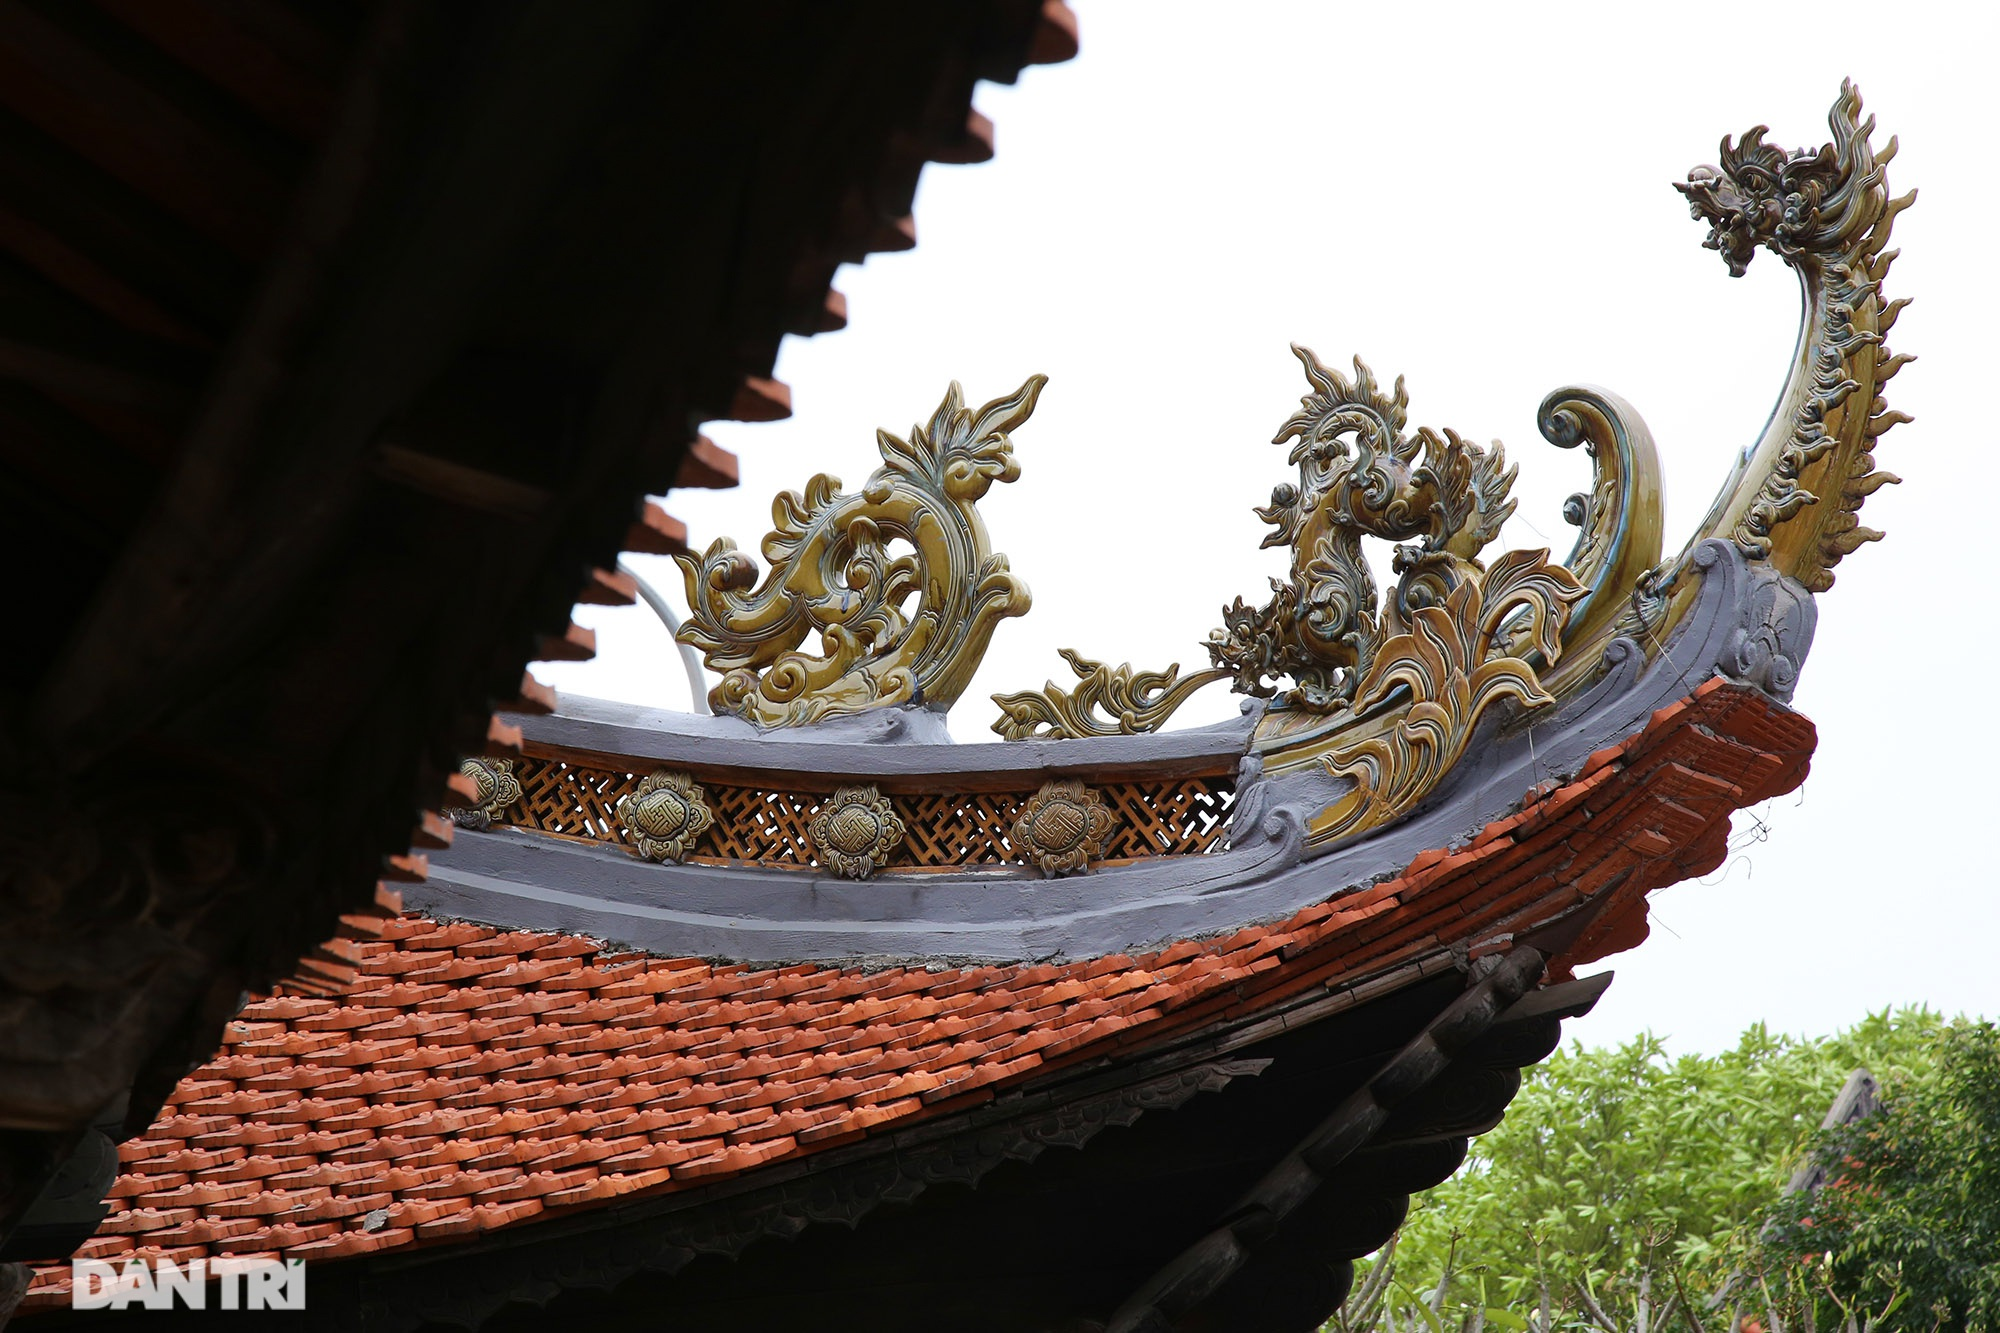 Ceramic pagoda built from tens of thousands of traditional handicrafts in Bat Trang - 5